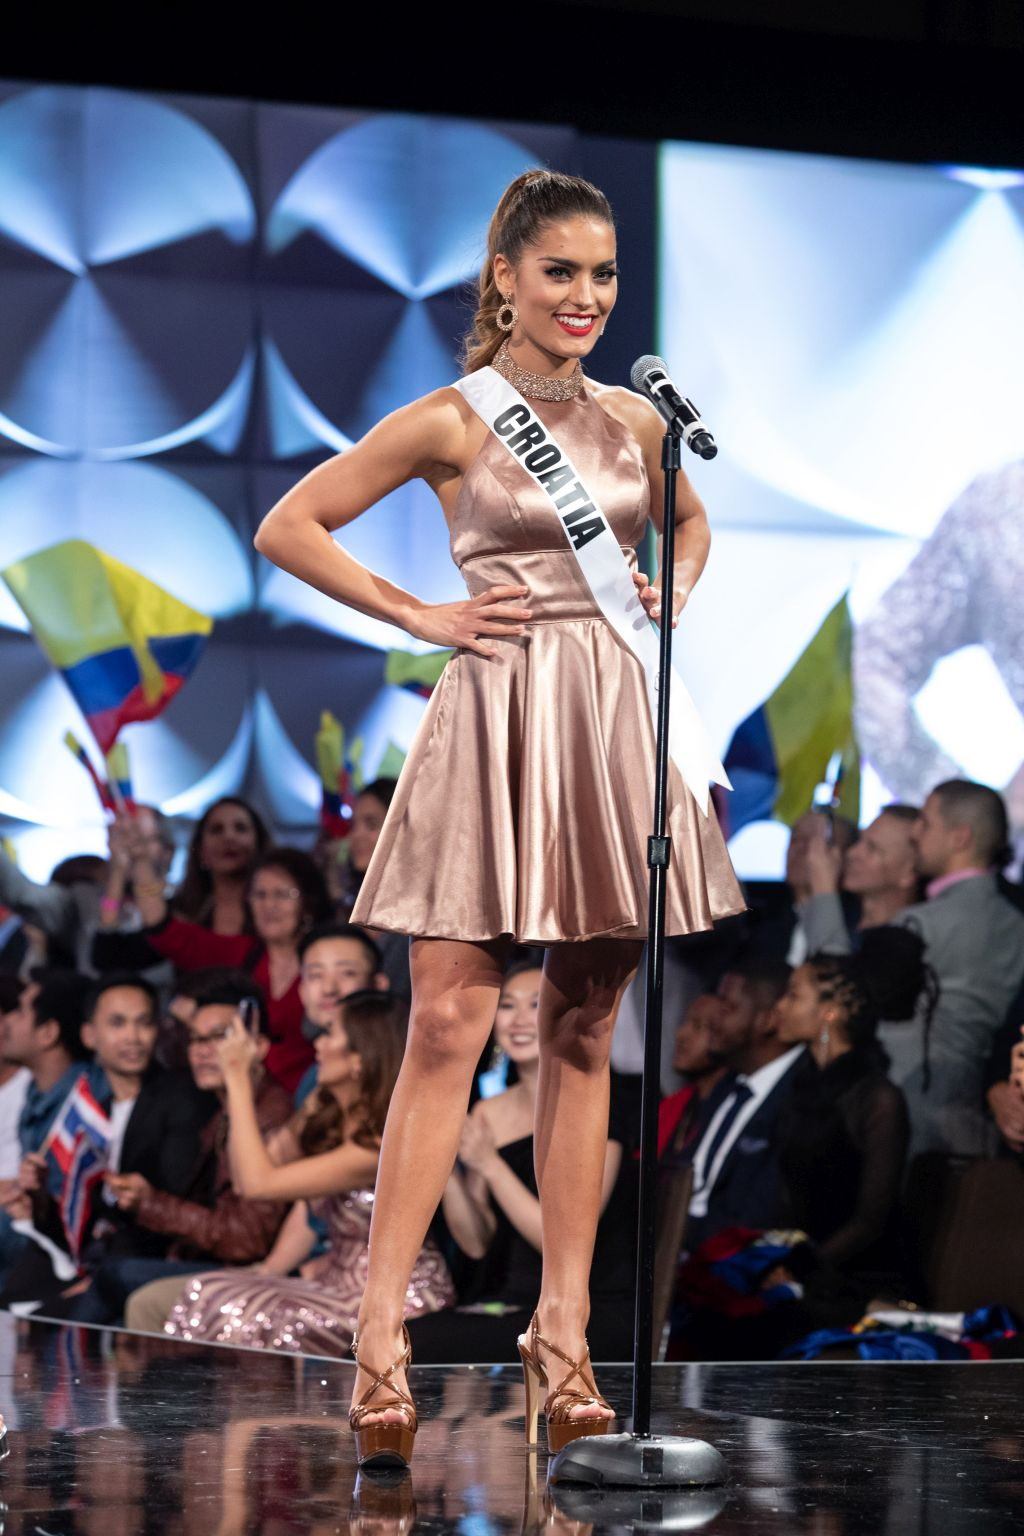 Mia Rkman, Miss Croatia 2019 on stage in fashion by Sherri Hill during the opening of the MISS UNIVERSE® Preliminary Competition at the Marriott Marquis in Atlanta on Friday, December 6, 2019.  The Miss Universe contestants are touring, filming, rehearsing and preparing to compete for the Miss Universe crown in Atlanta. Tune in to the FOX telecast at 7:00 PM ET on Sunday, December 8, 2019 live from Tyler Perry Studios in Atlanta to see who will become the next Miss Universe. HO/The Miss Universe Organization